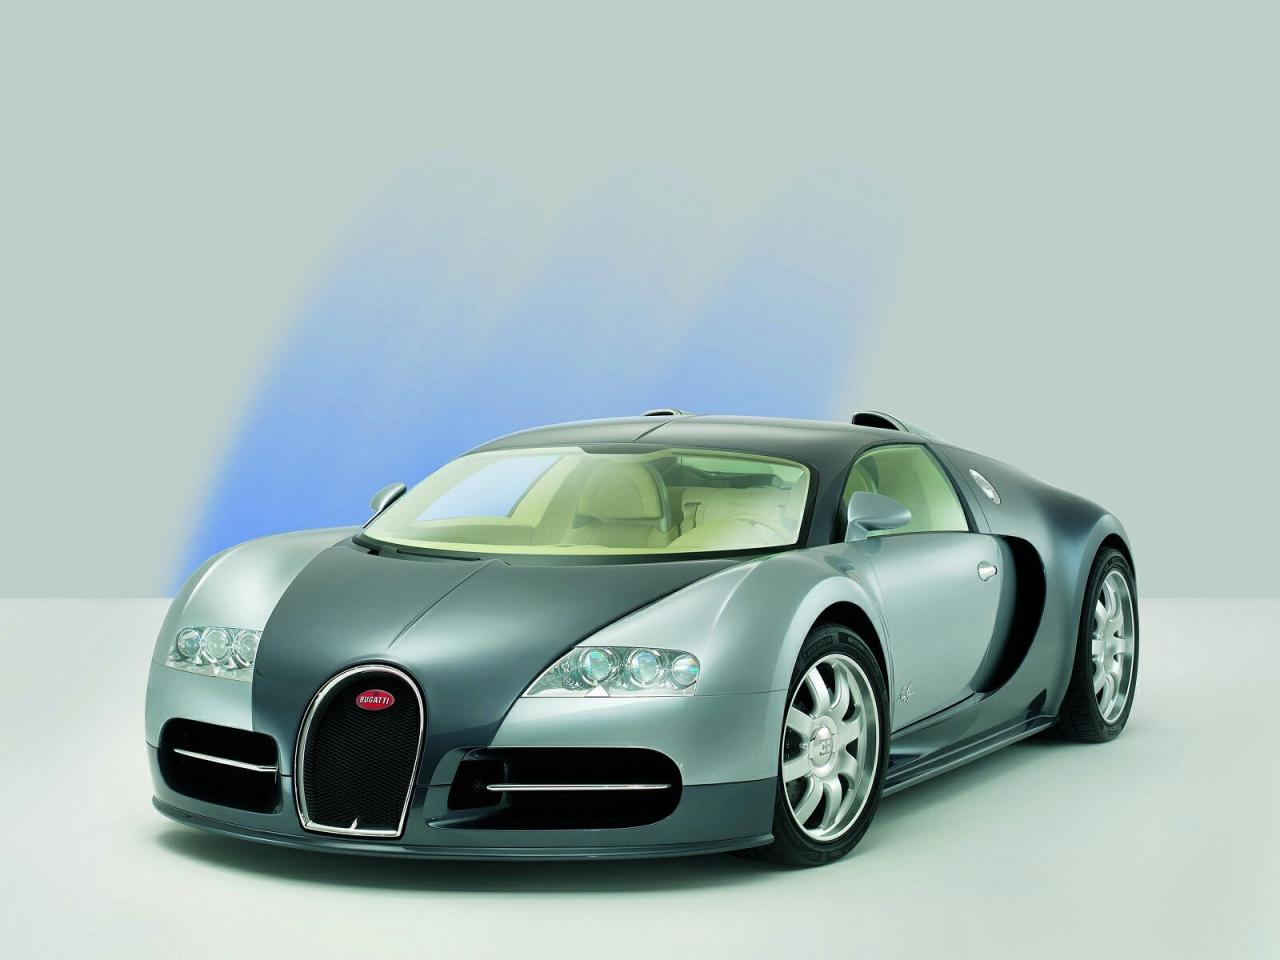 Bugatti Cars Related Images Start 0 Weili Automotive Network